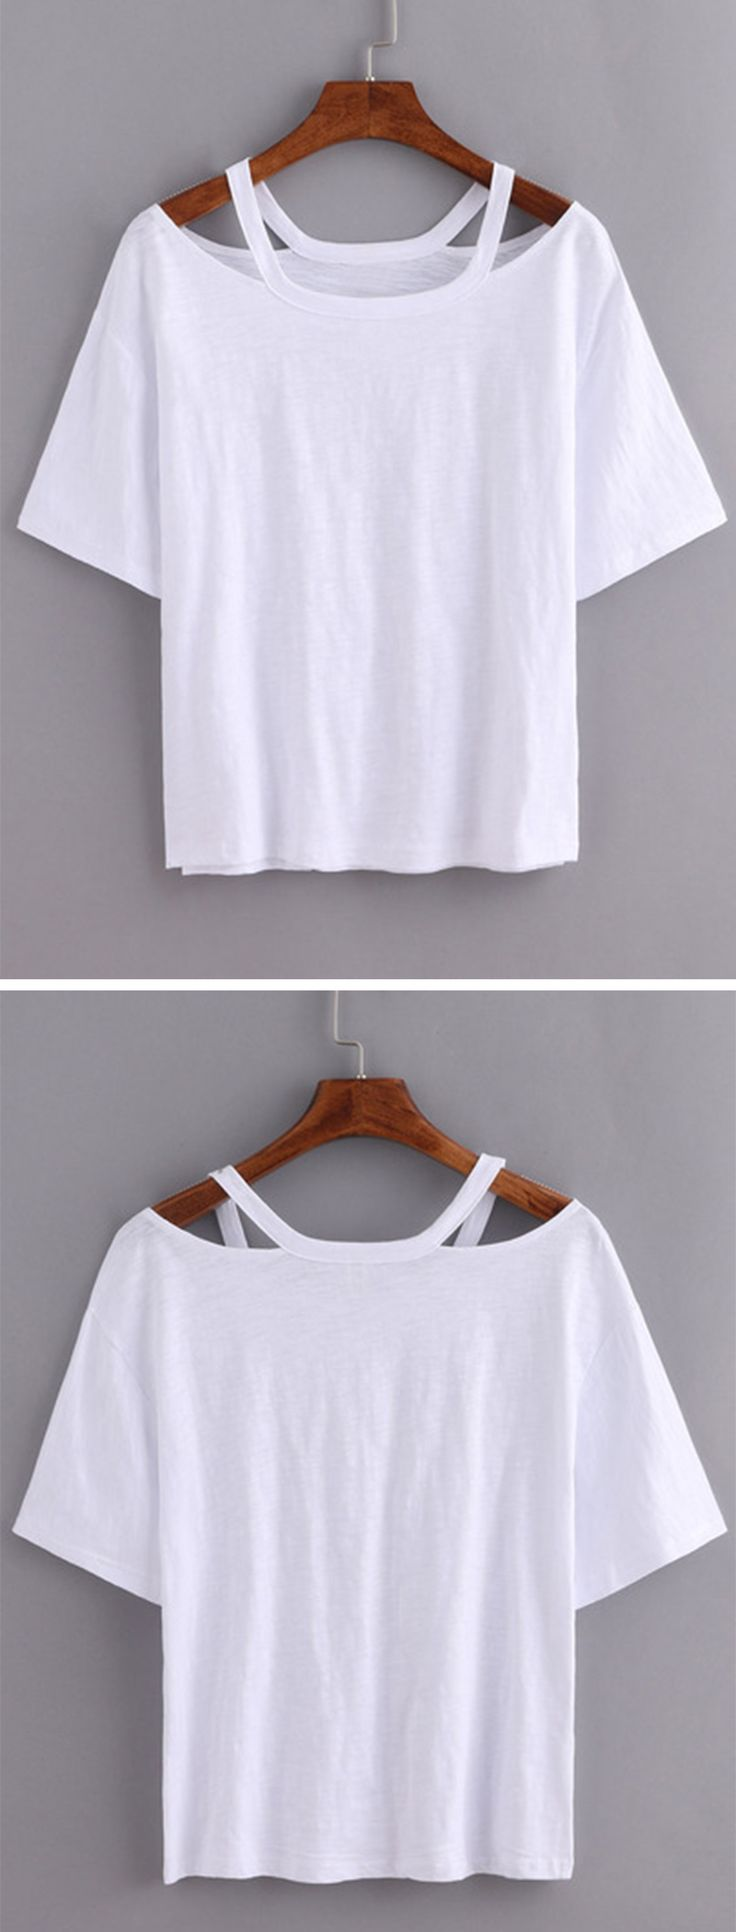 The 25+ best T shirt cutting ideas on Pinterest | Diy t shirt ...